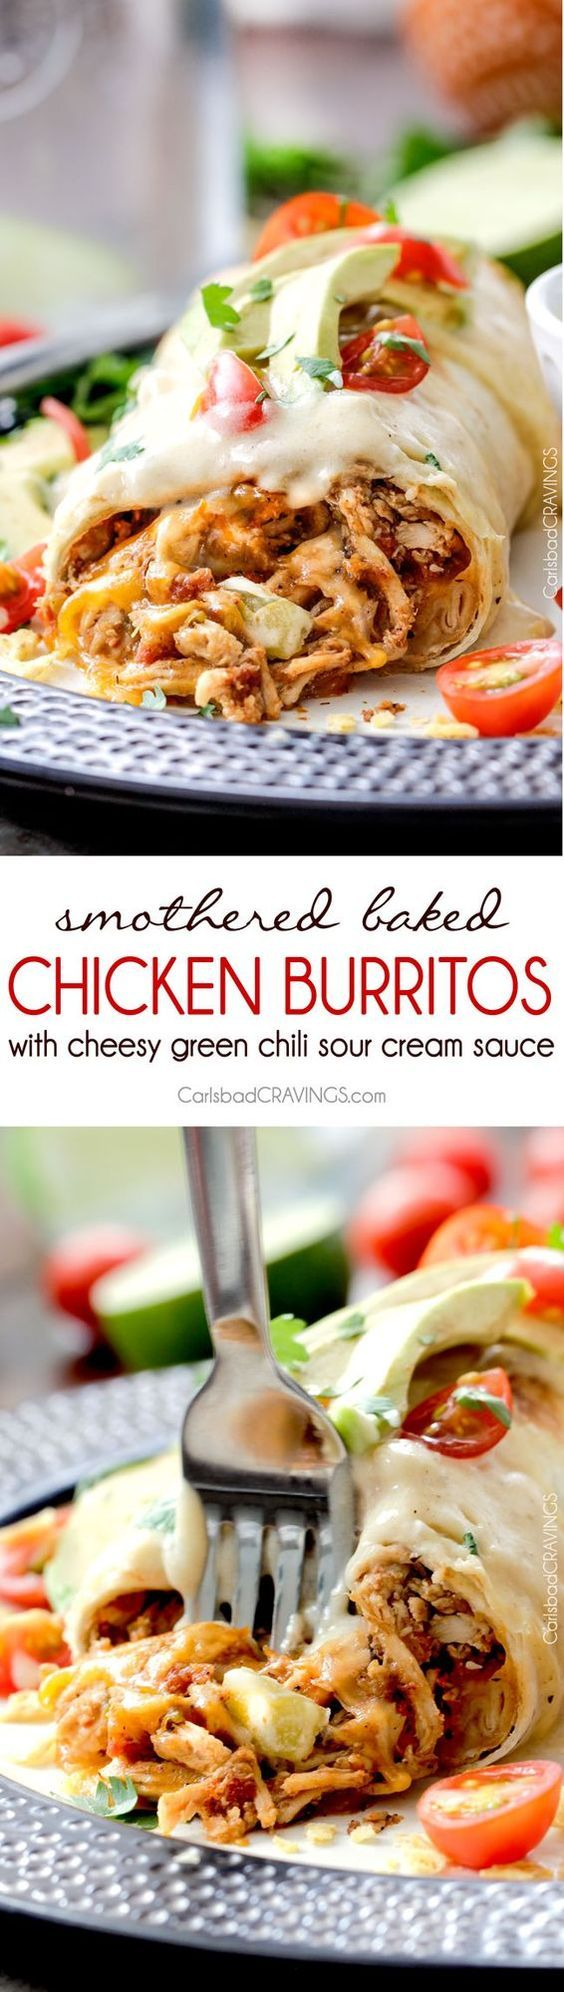 "Smothered Baked Chicken Burritos AKA ""skinny chimichangas"" are restaurant delicious without all the calories! Made super easy by stuffing with the BEST slow cooker Mexican chicken and then baked to go"